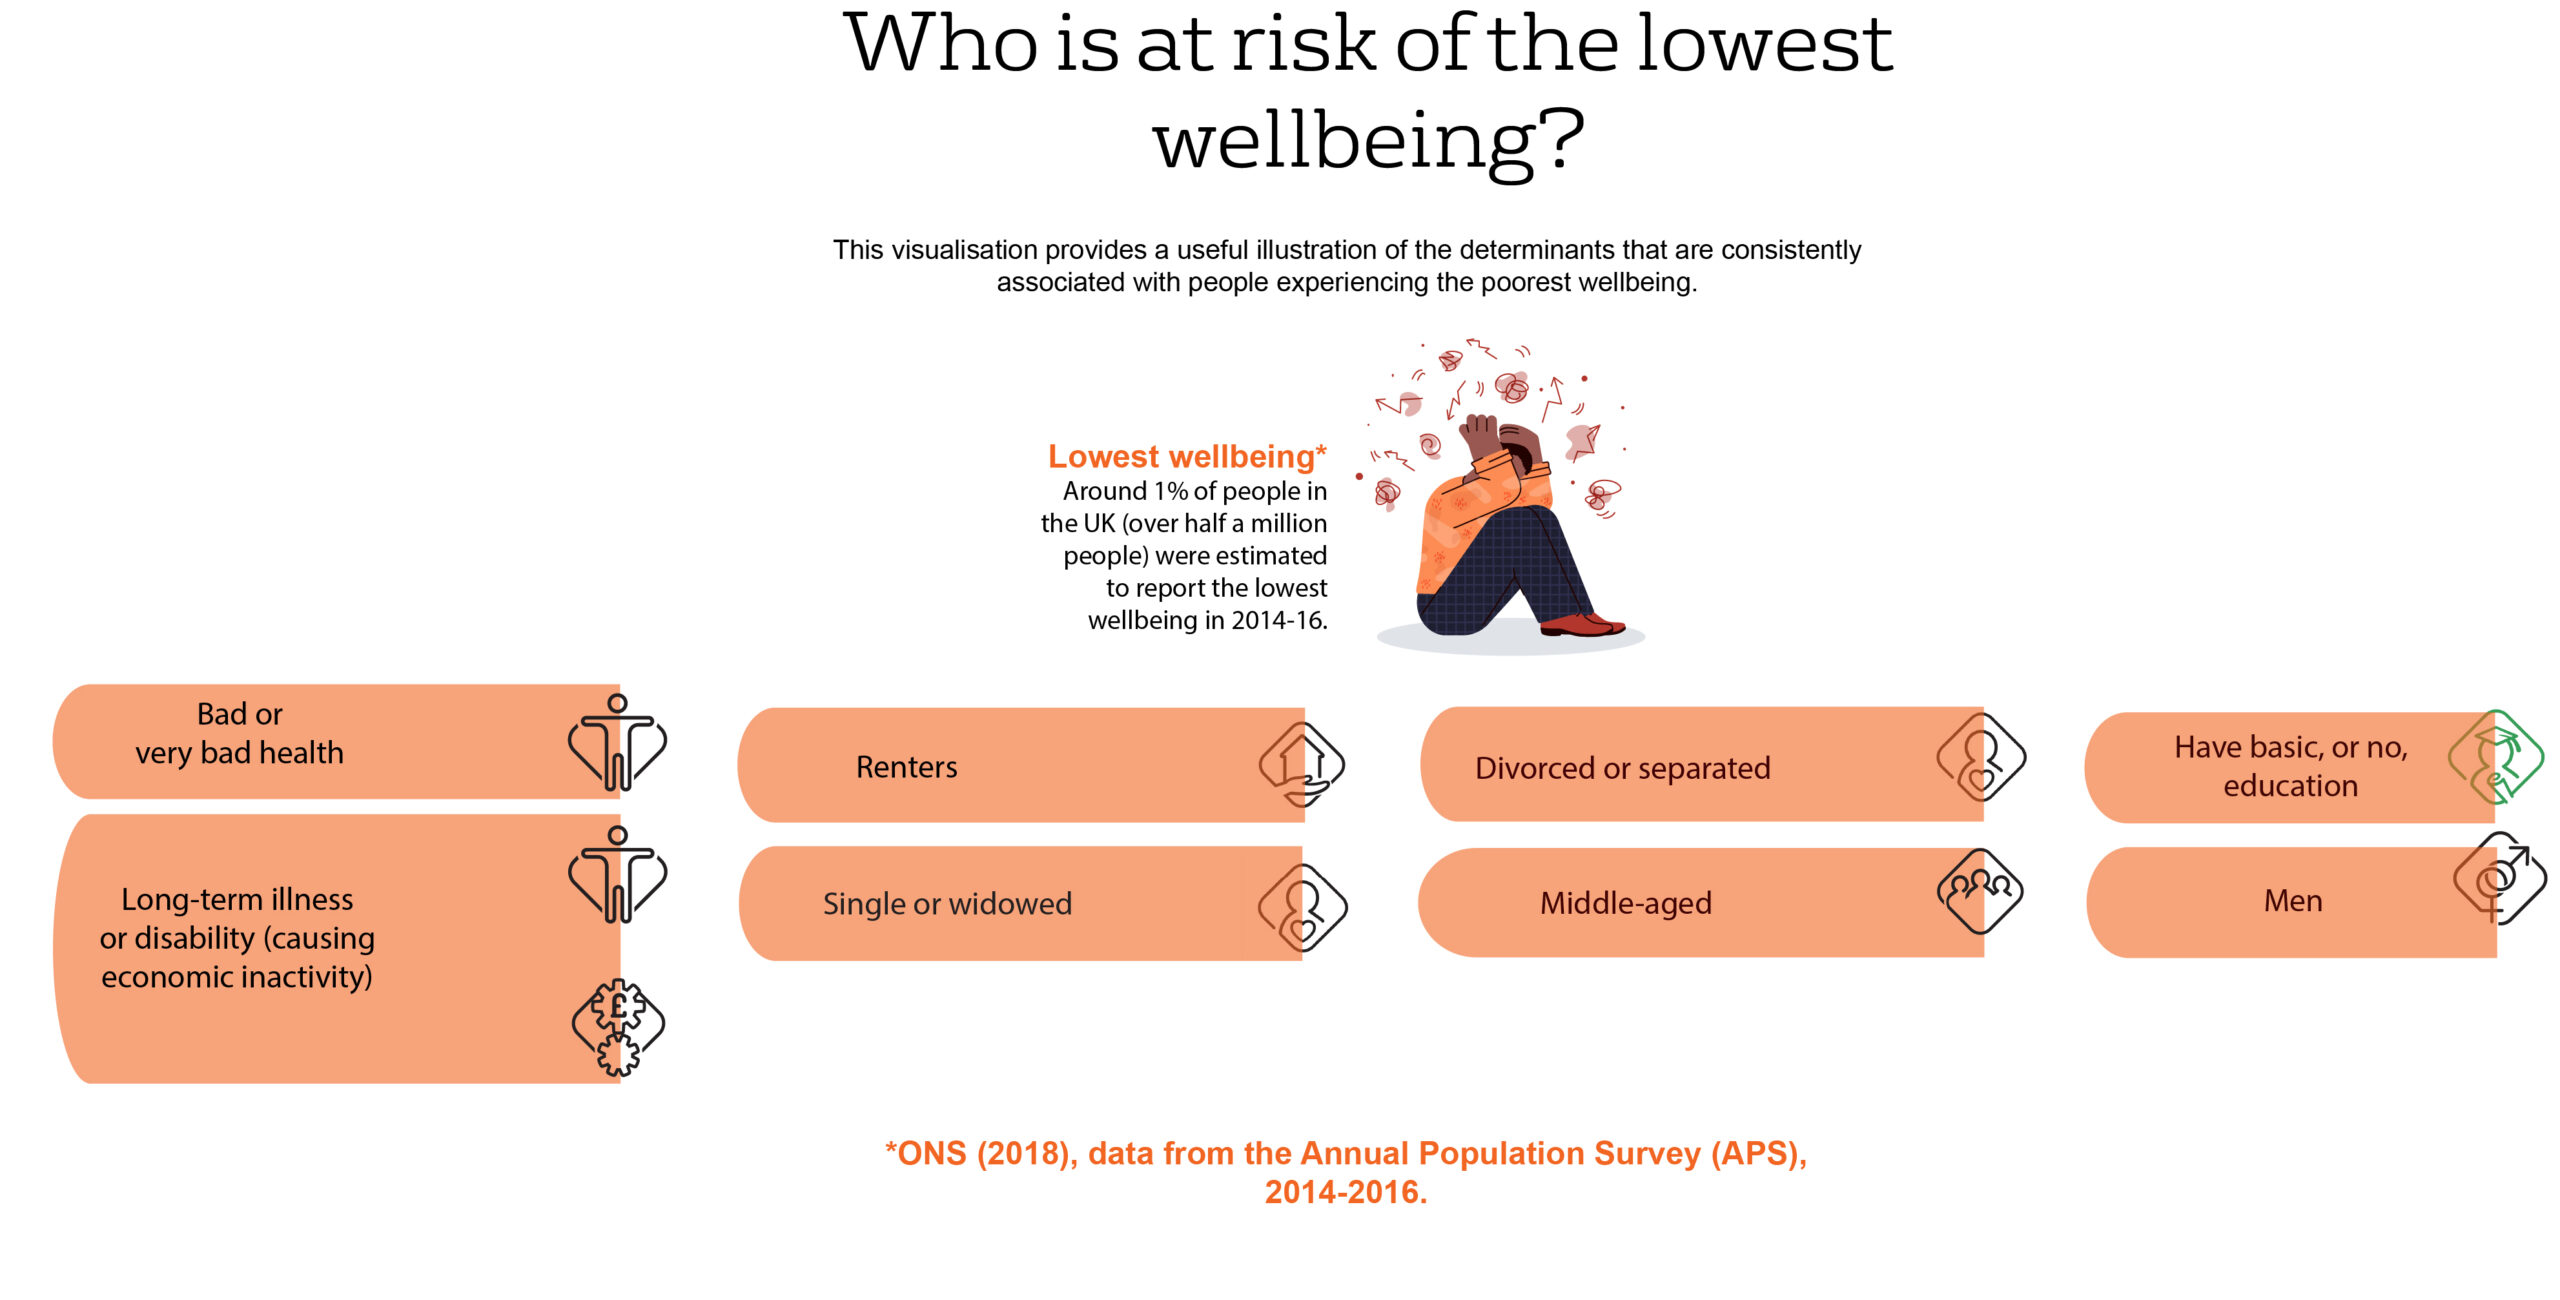 Who is at risk of low wellbeing?